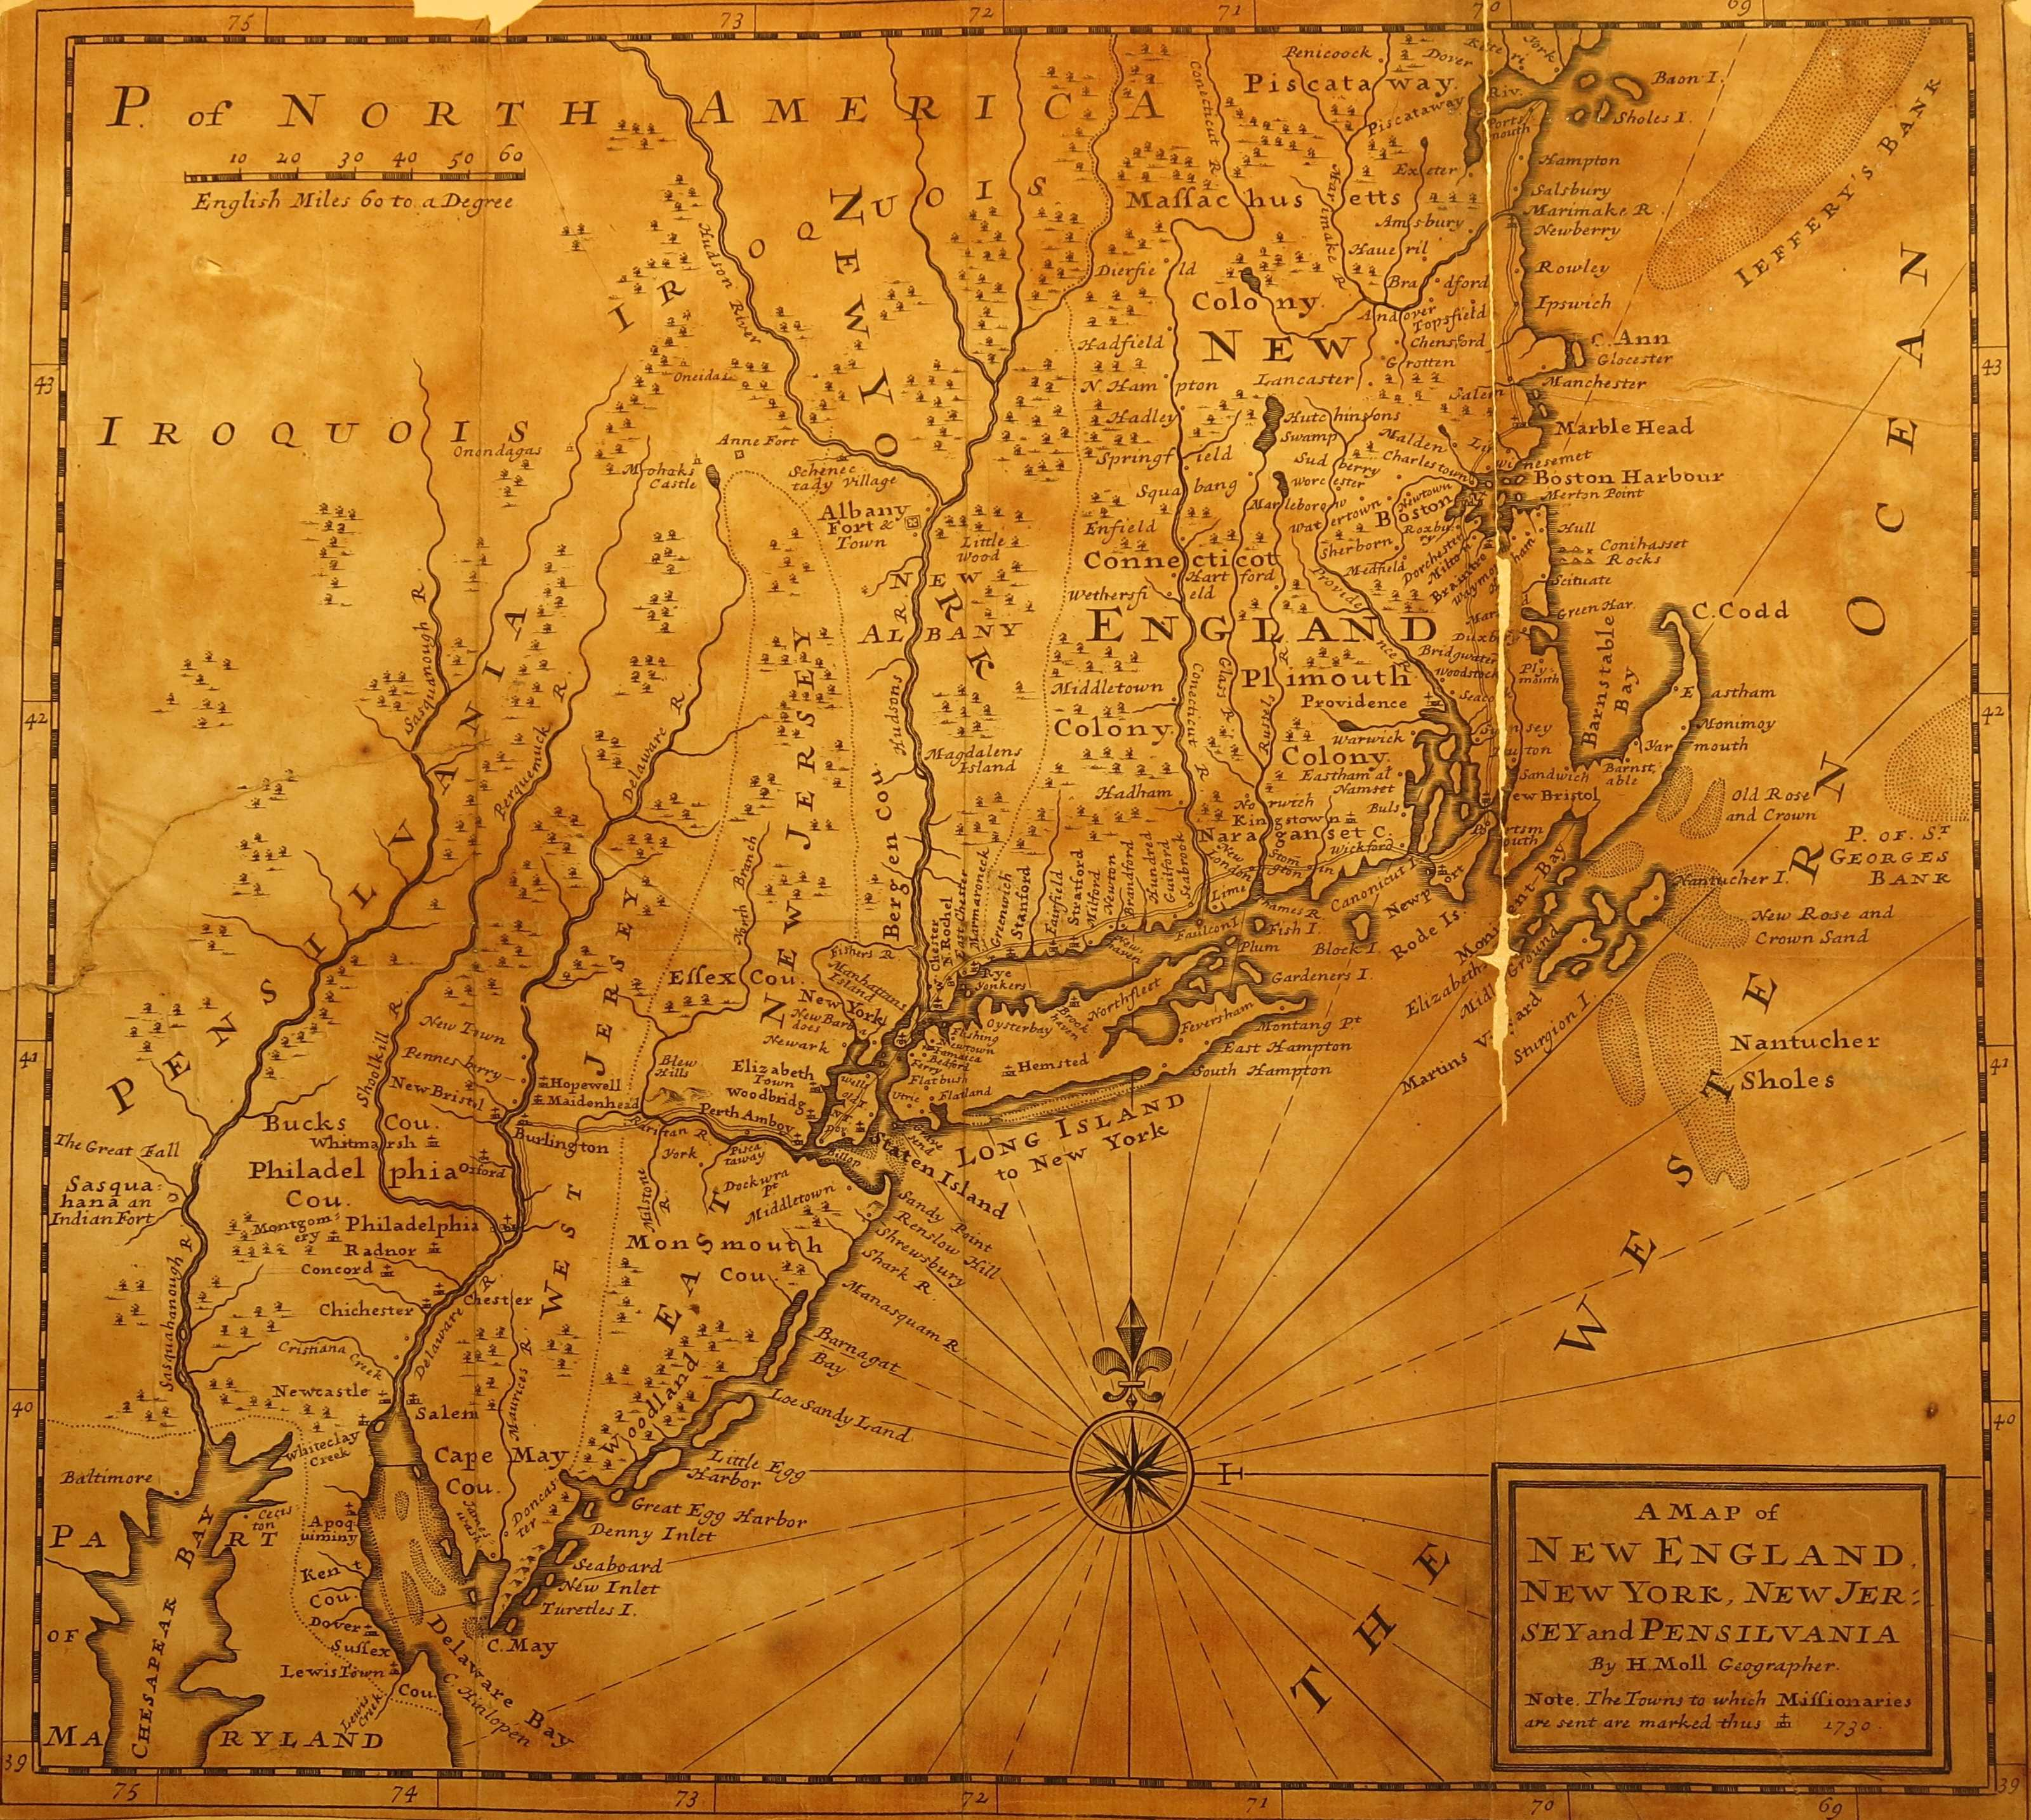 ... A MAP OF NEW ENGLAND, NEW YORK, NEW JERSEY AND PENSILVANIA BY H. MOLL  GEOGRAPHER. NOTE: THE TOWNS TO WHICH MISSIONARIES ARE SENT ARE MARKED THUS  + 1730.